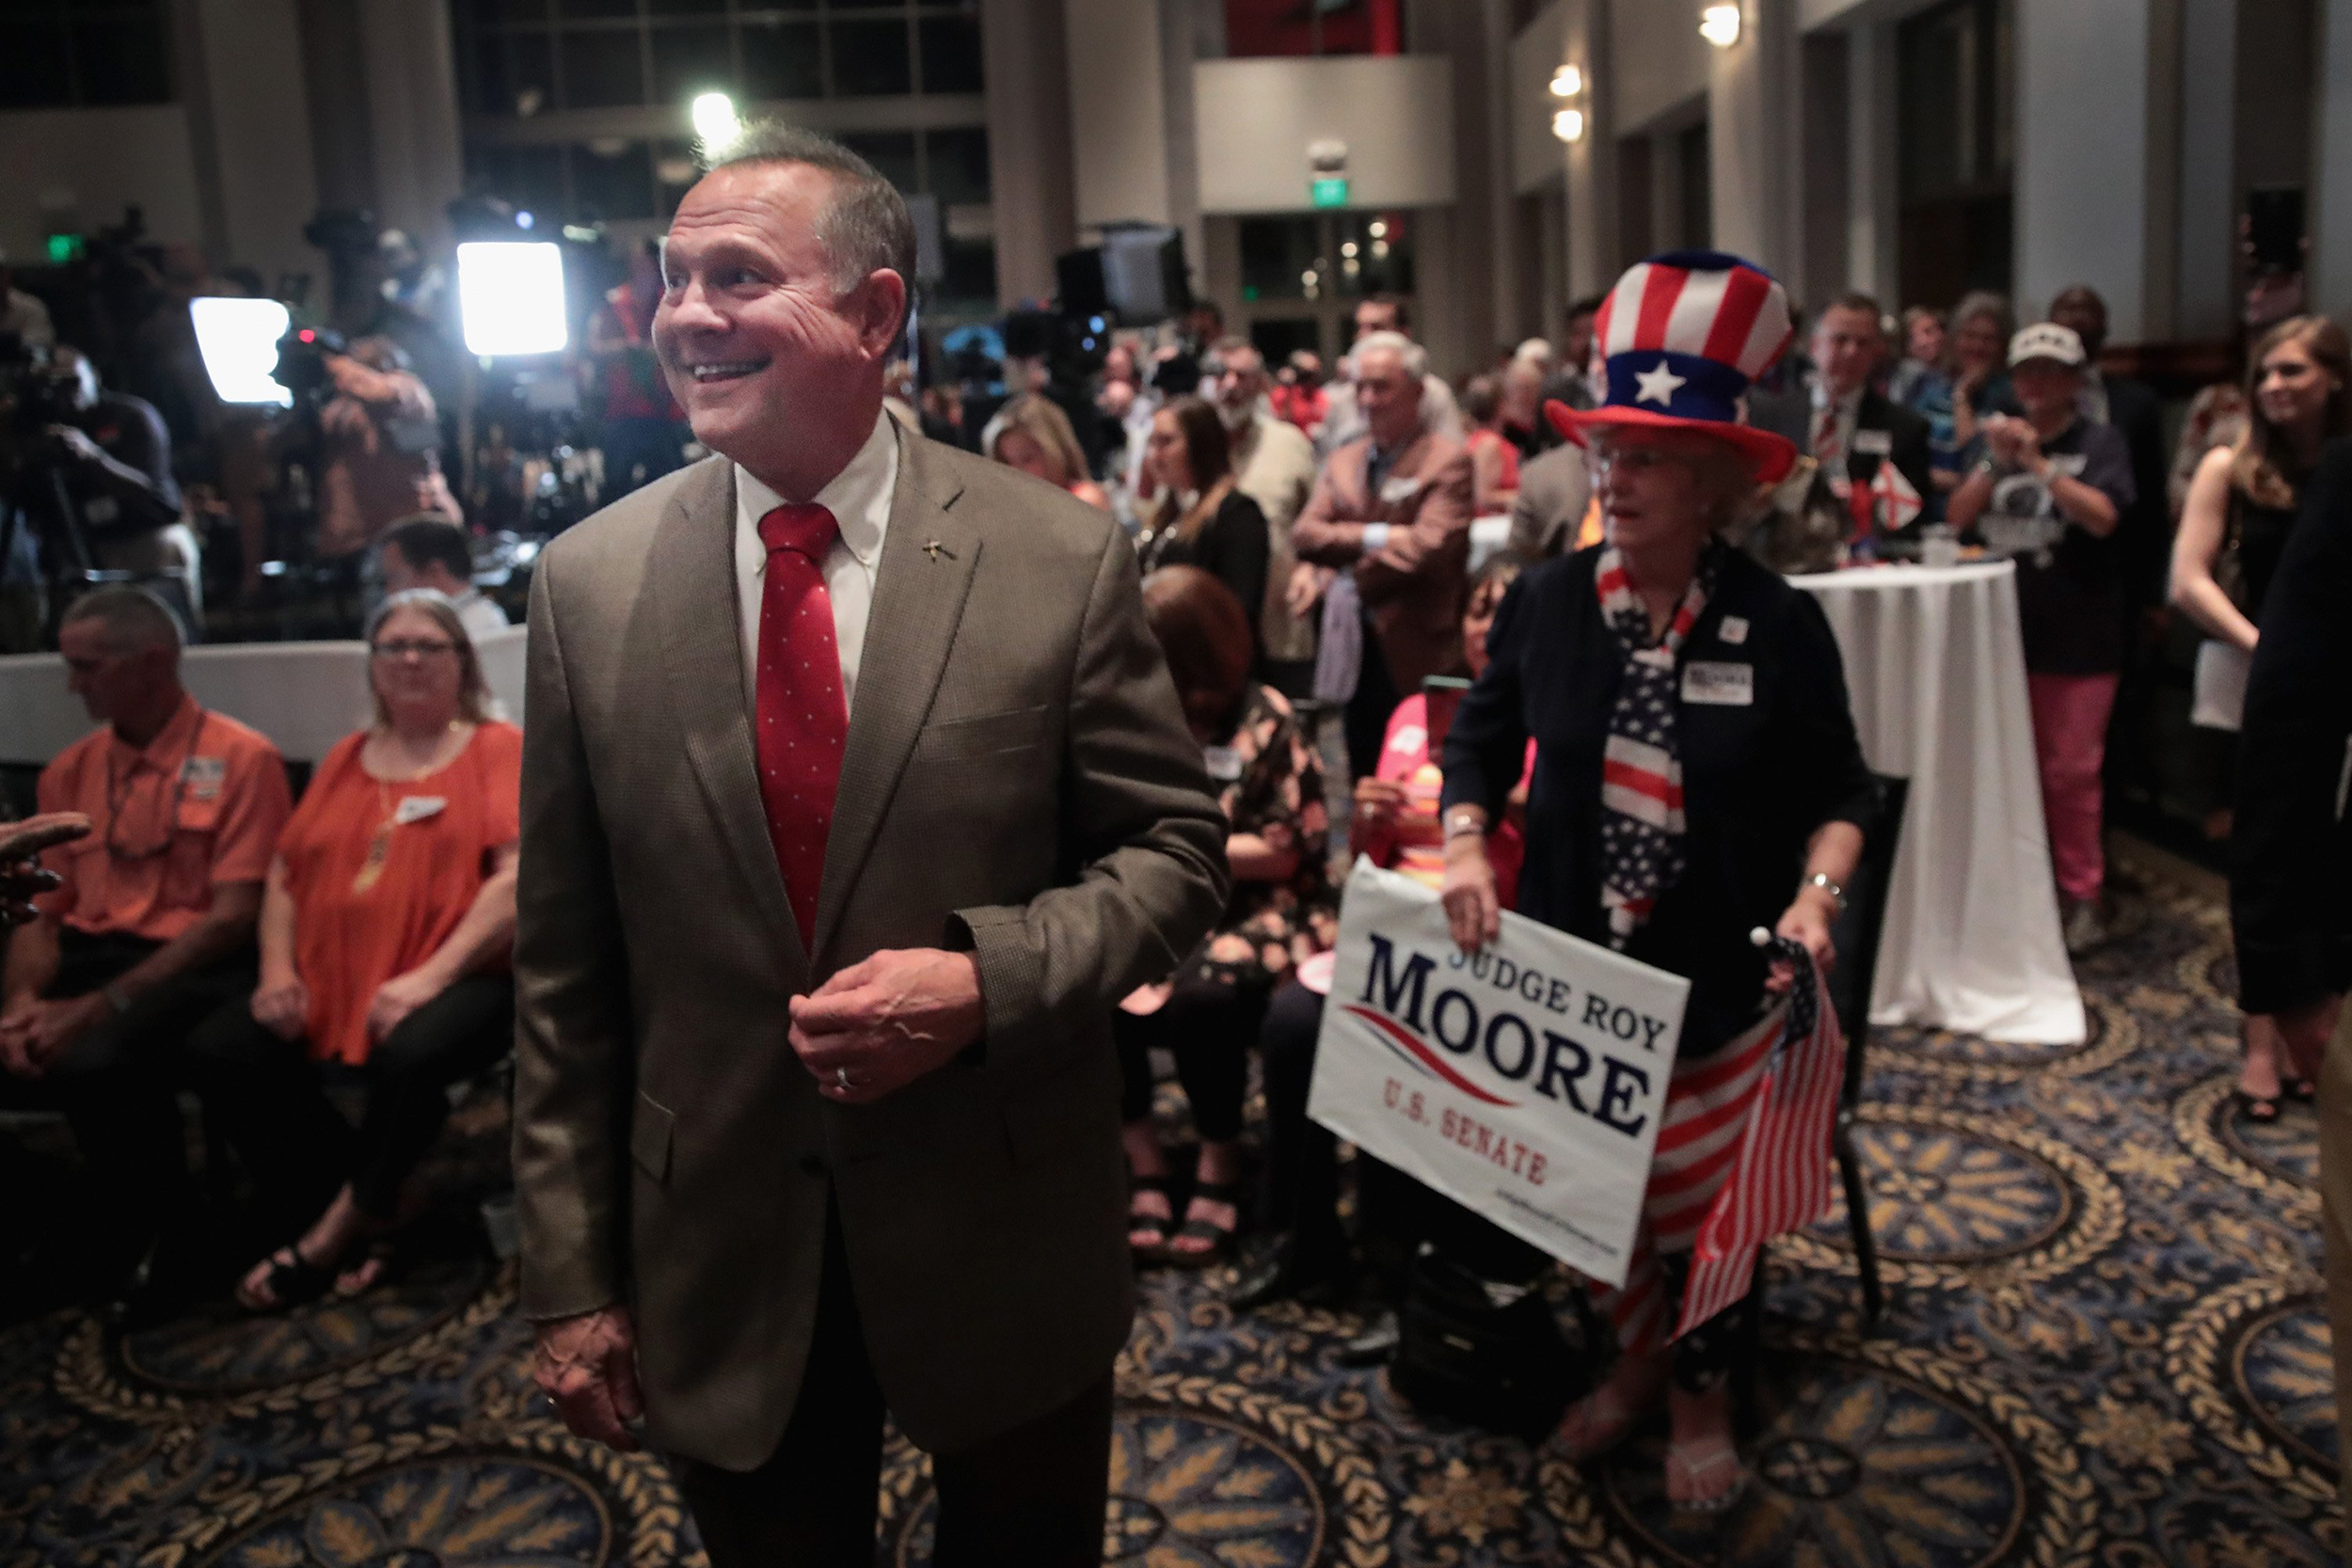 Alabama-GOP-Threatens-Retaliation-for-Disloyalty-to-Moore